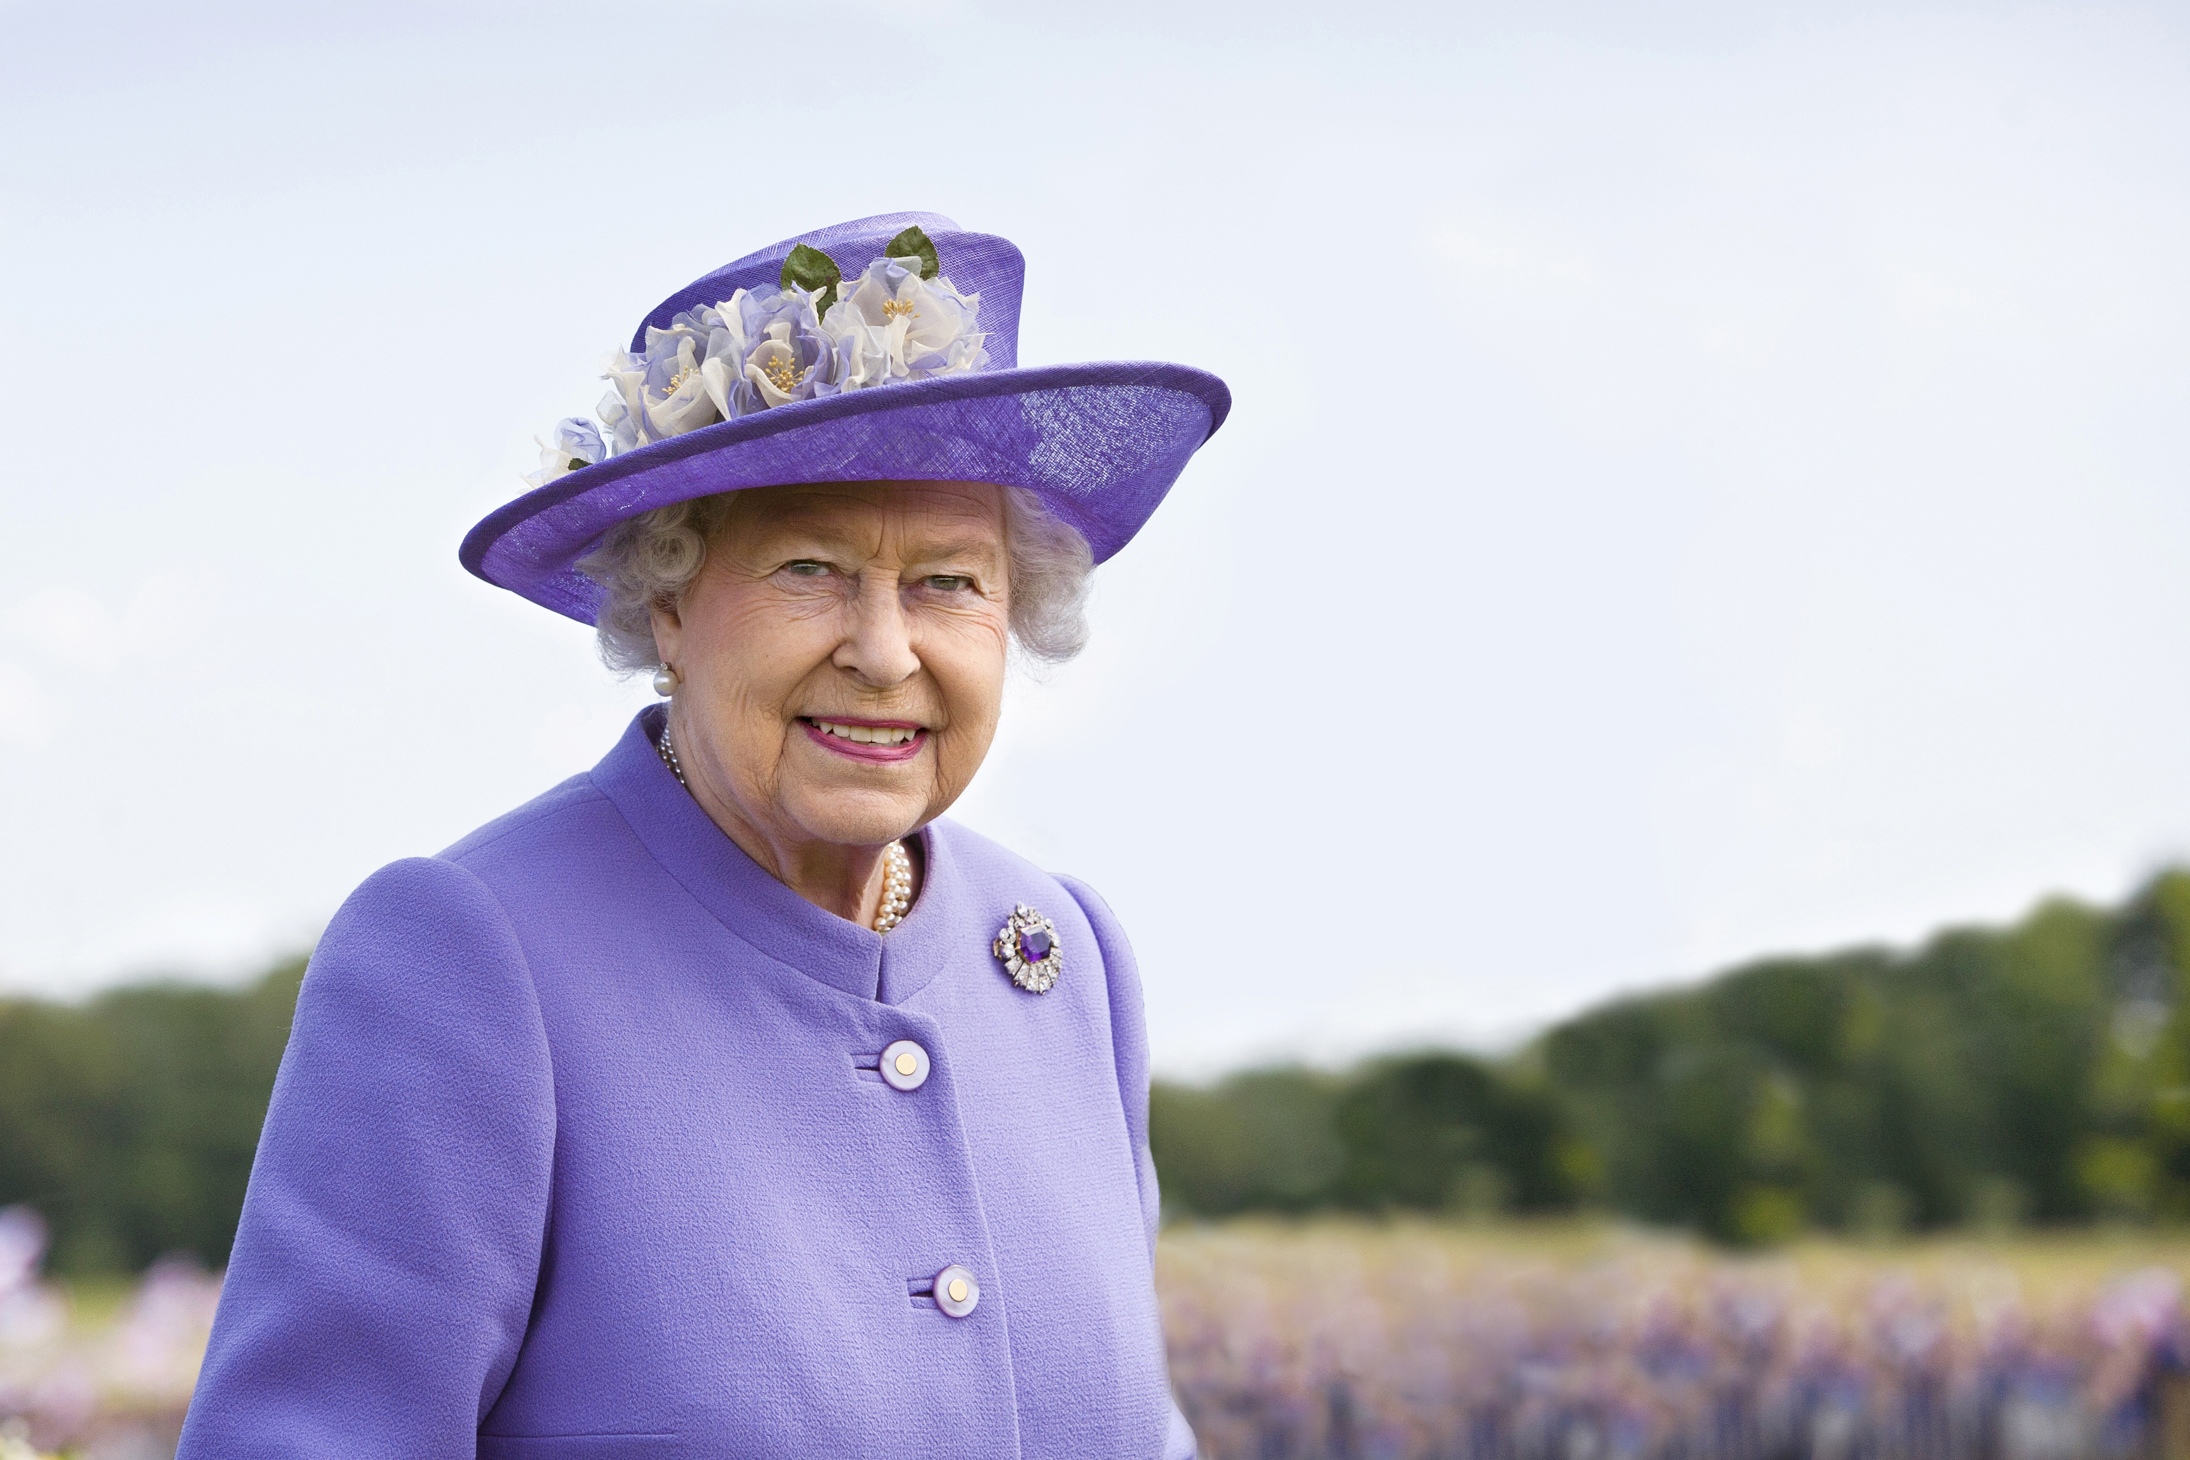 Her Majesty the Queen's visit to Hatfield House